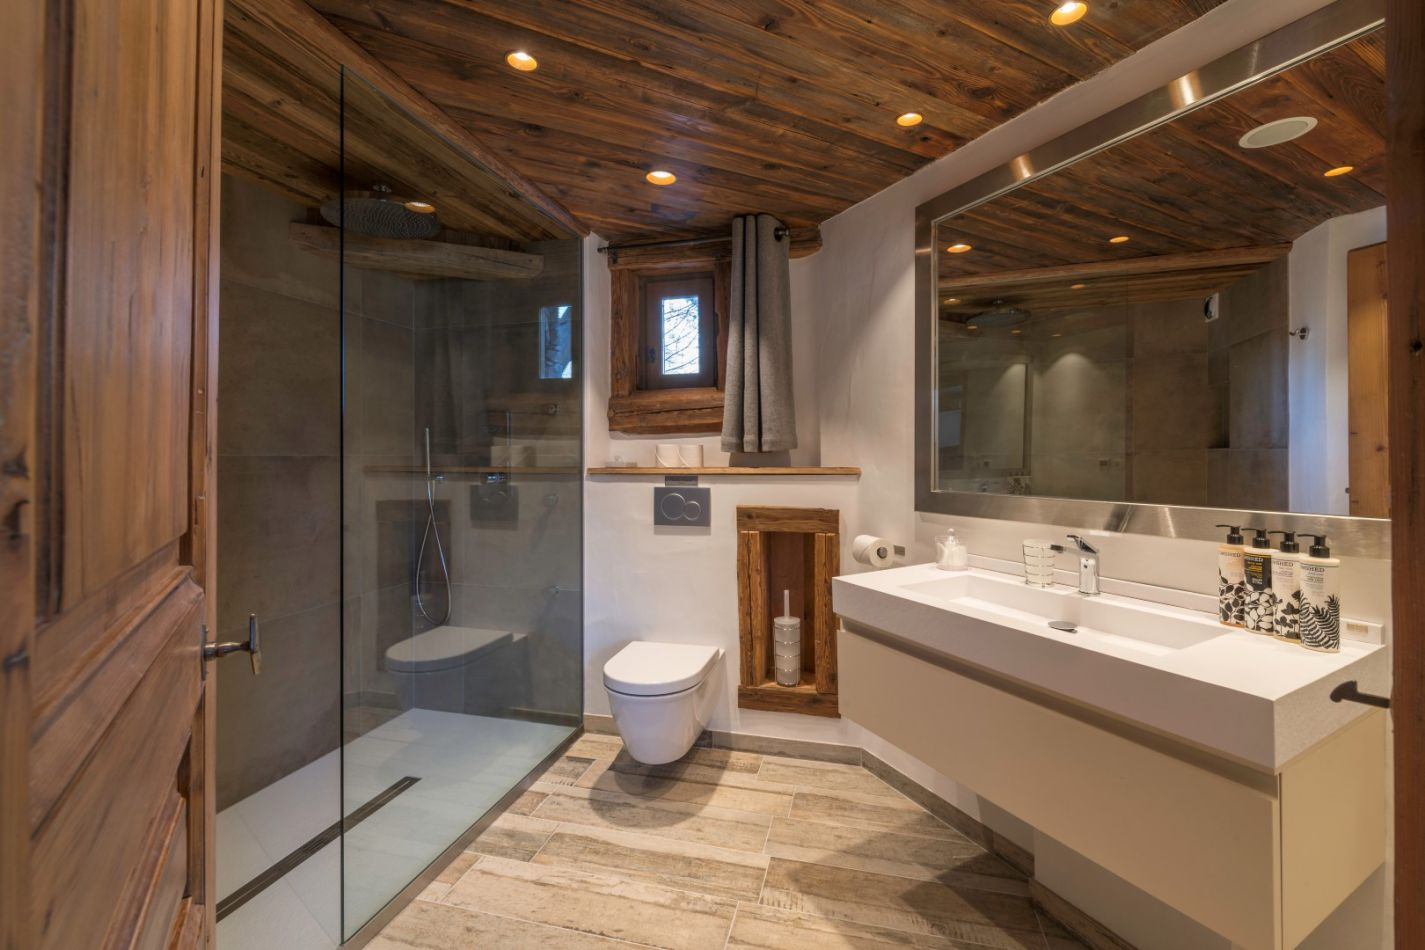 bathroom_new_1-large-2